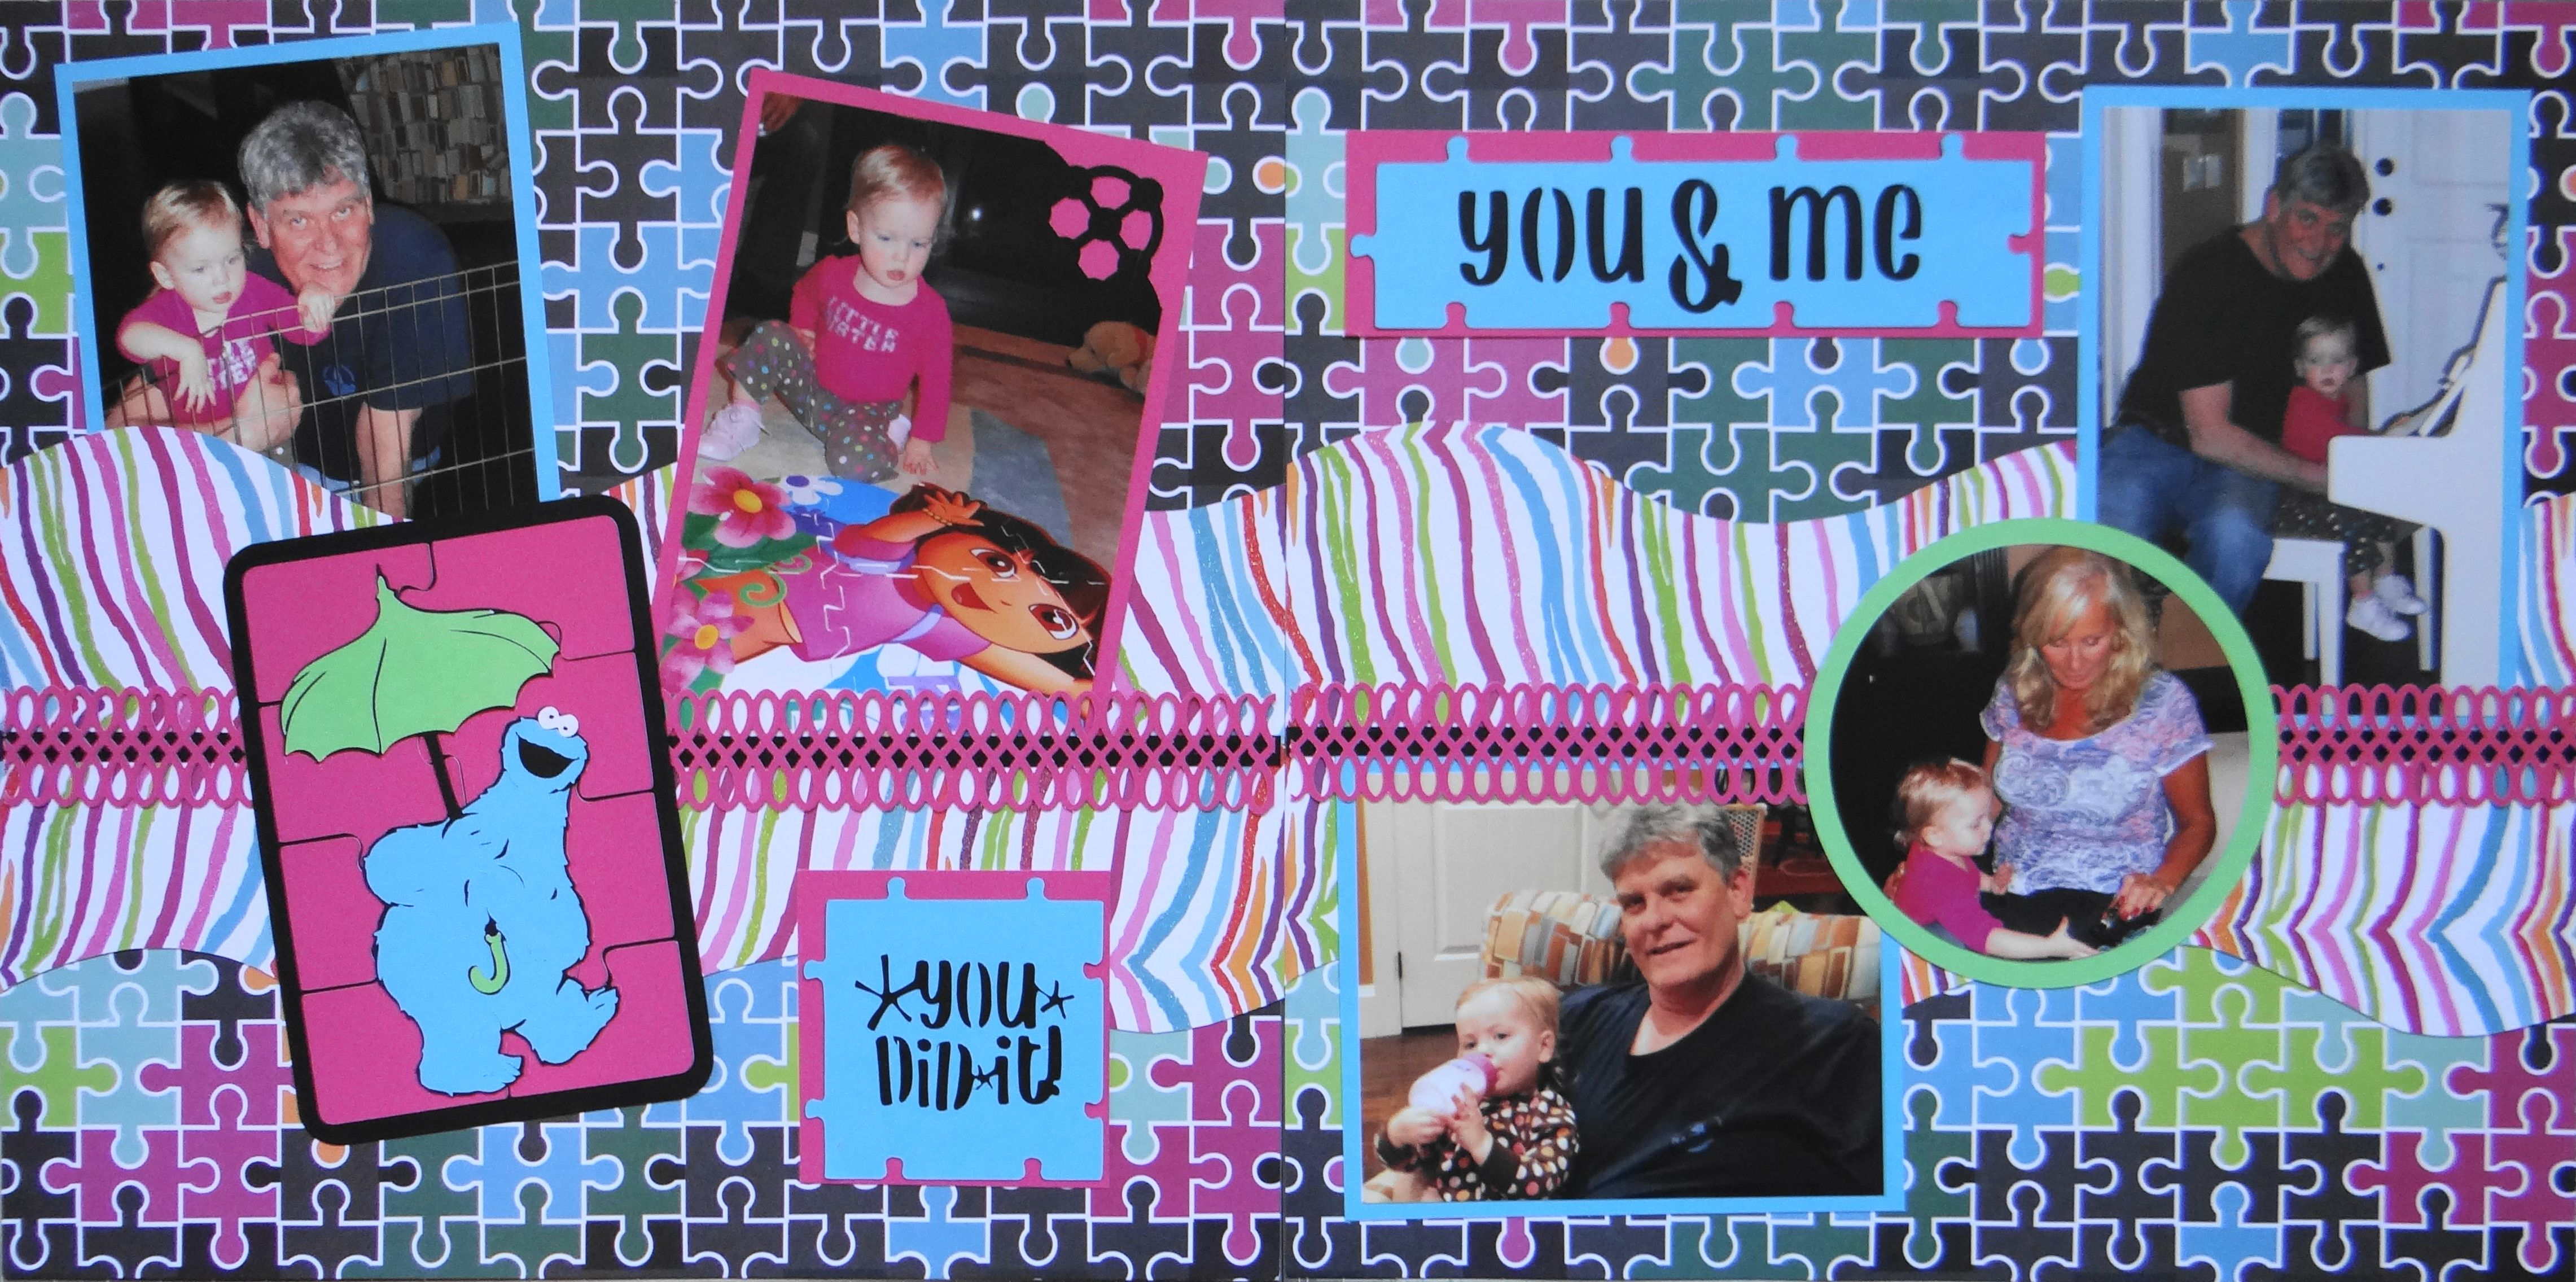 Family scrapbook ideas on pinterest - Scrapbook Page You Did It Children S 2 Page Kiwi Lane Layout With Cookie Monster